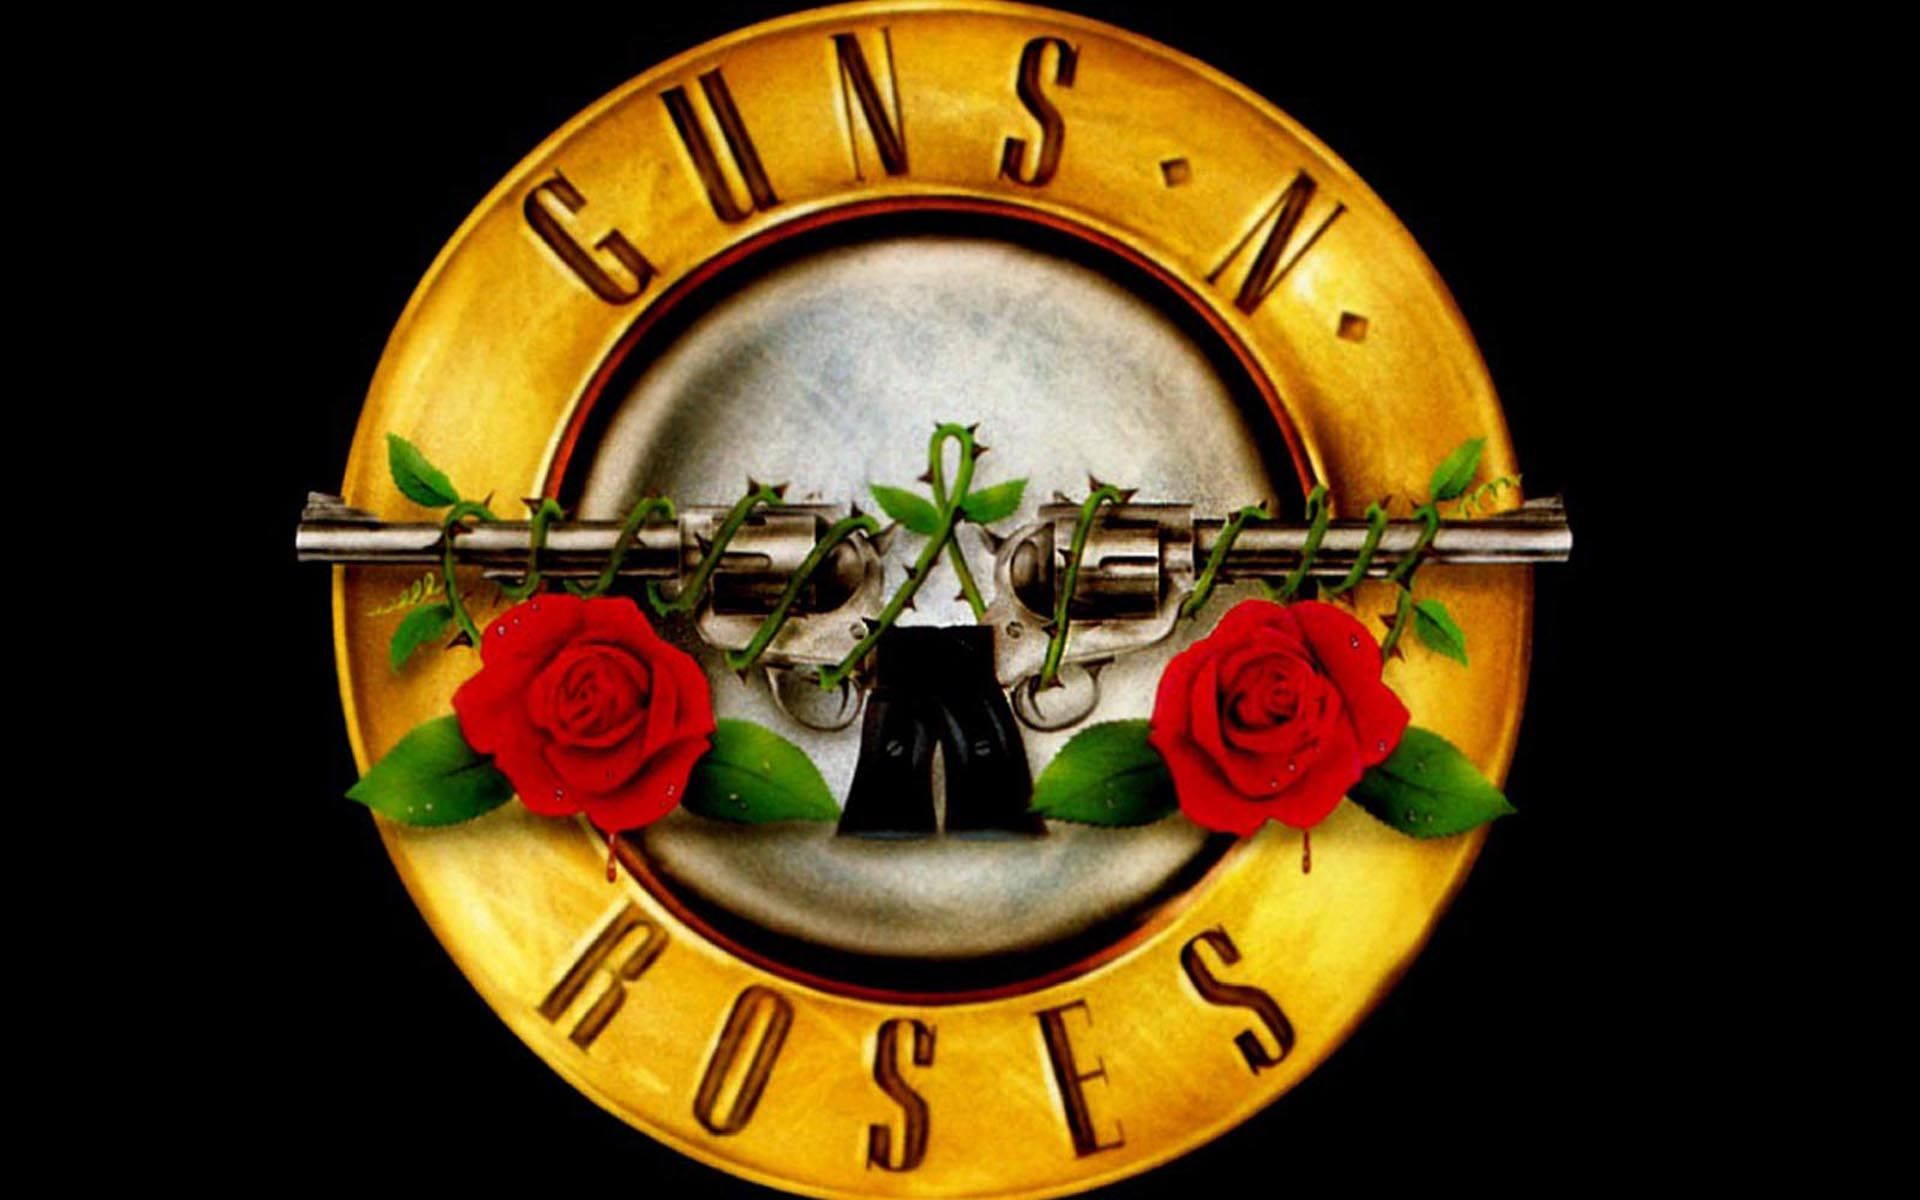 4312 - Demuestra lo que sabes de Guns And Roses